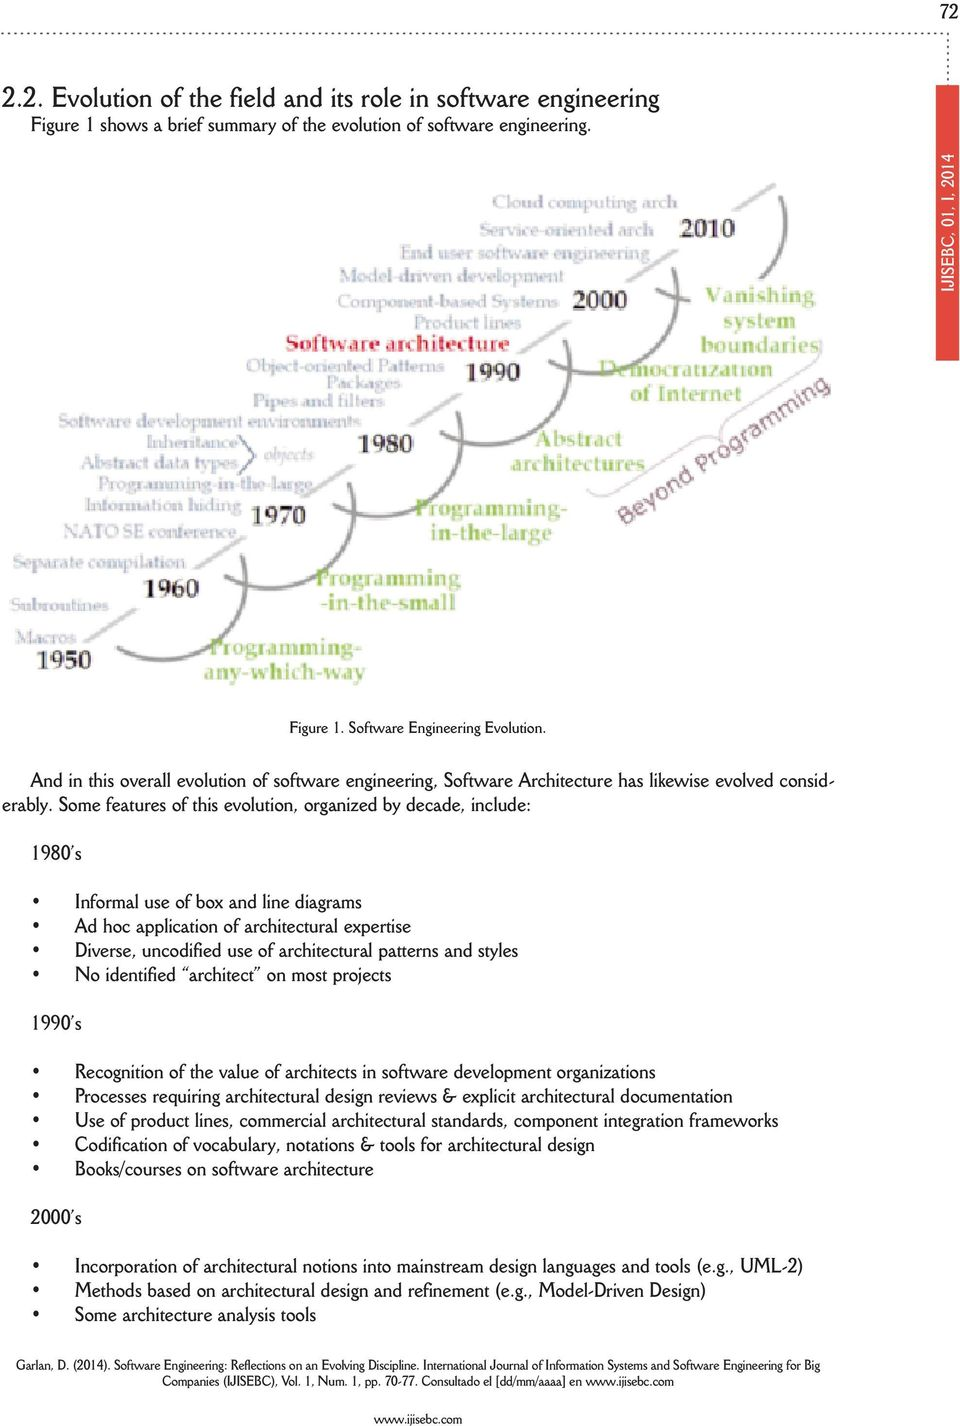 Software Engineering: Reflections on an Evolving Discipline